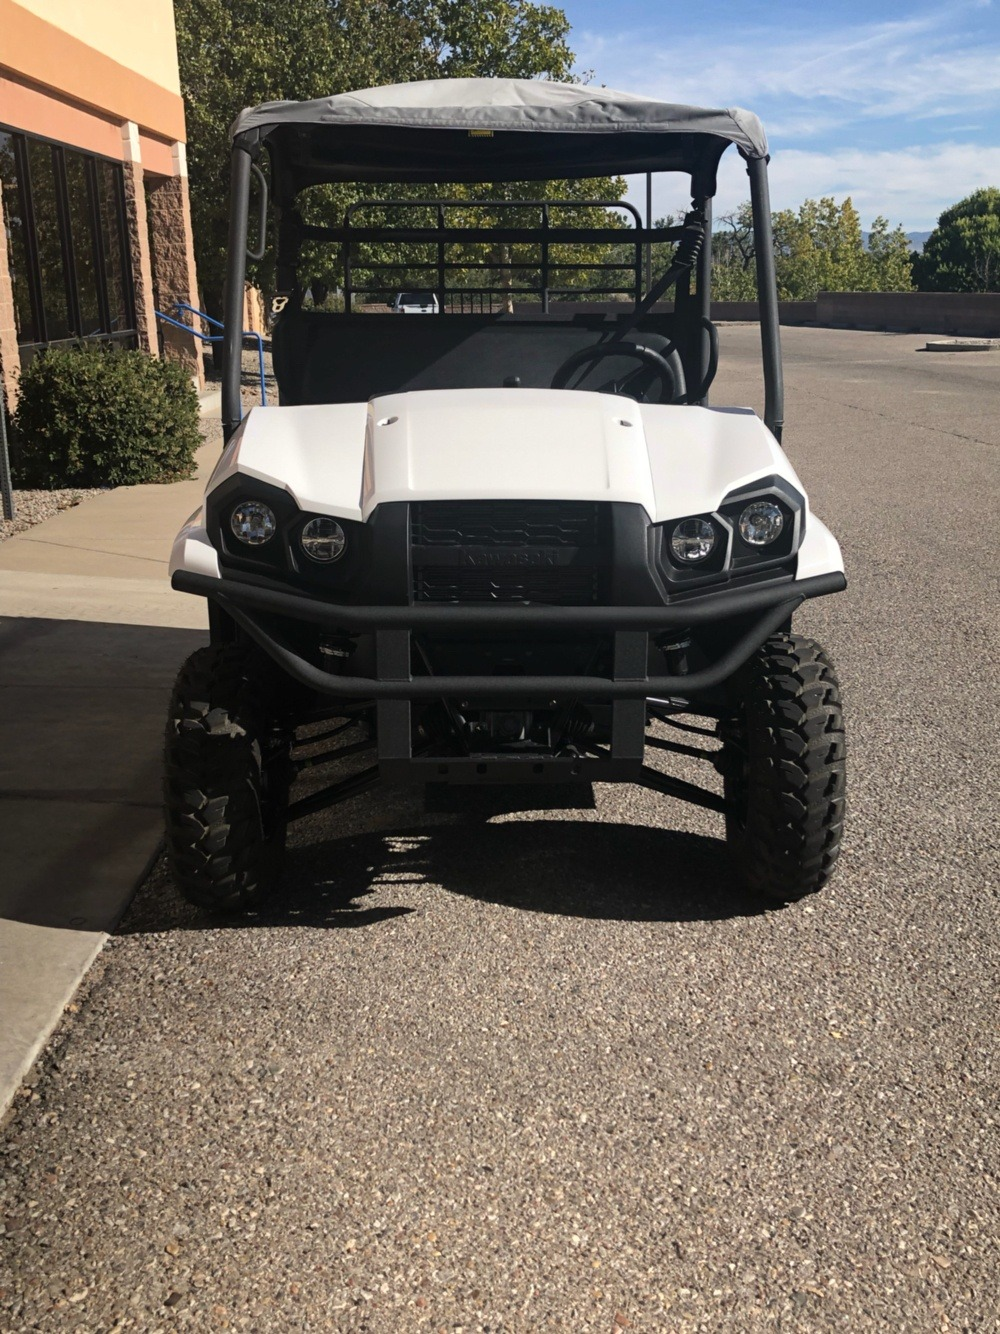 2019 Kawasaki Mule PRO-MX EPS in Albuquerque, New Mexico - Photo 2